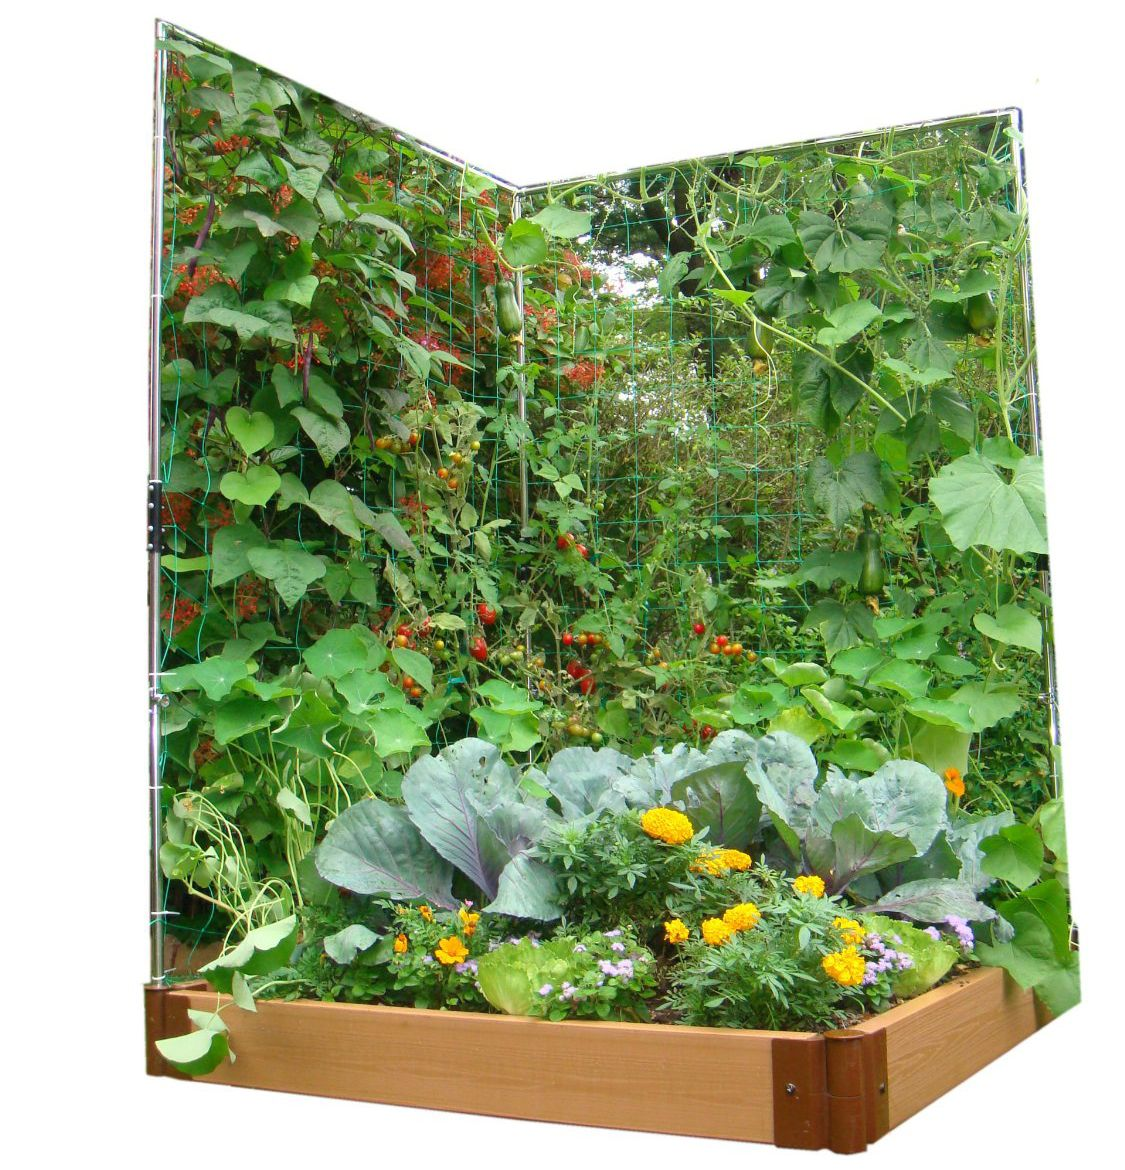 Vertical vegetable garden design ideas - 5 Vertical Gardens Vegetable Garden Ideas